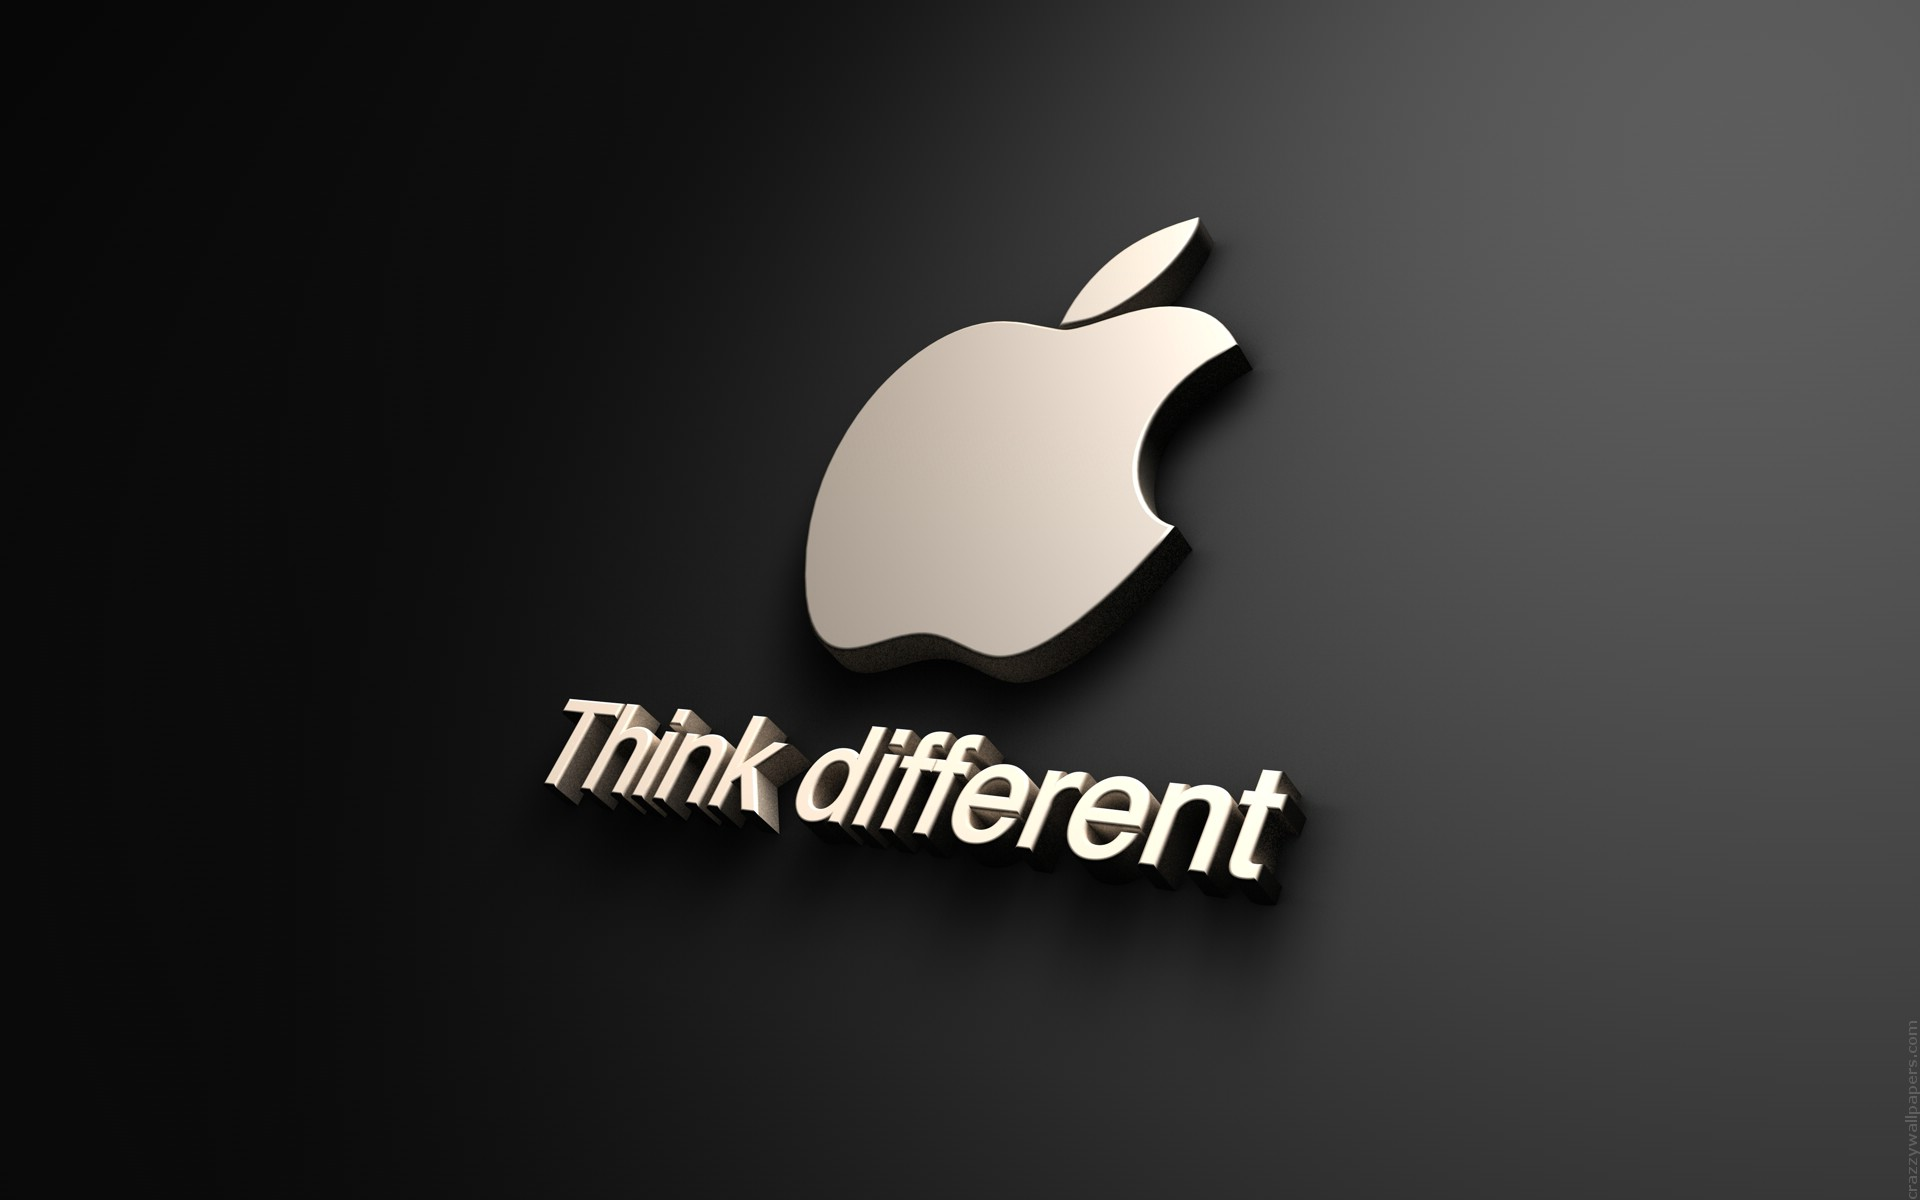 think-different-MAC-changer-image-arrier-plan-du-bureau